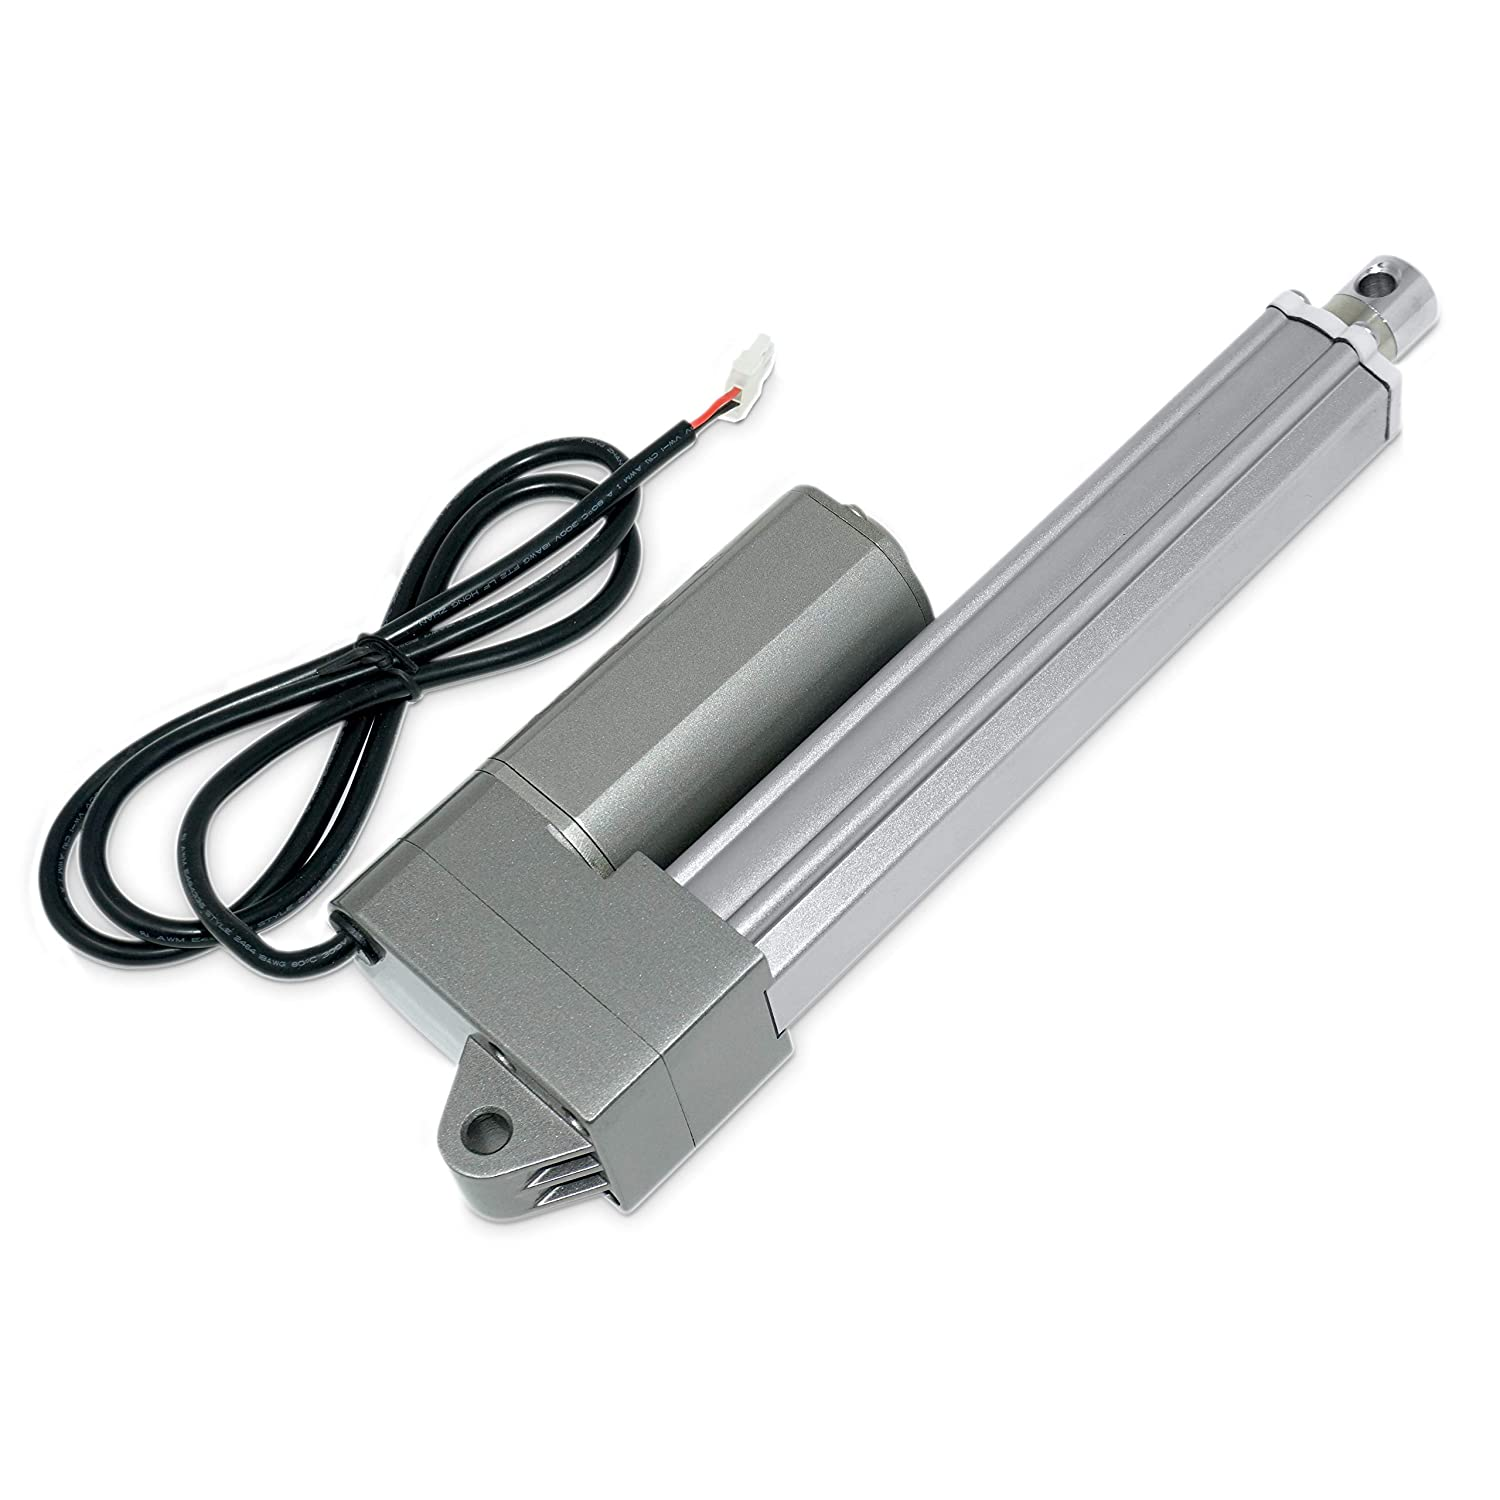 12V Industrial Linear Electric Actuator | 12 in. / 330 lbs. | Stainless Steel Rod, High Force, Brushed DC Motor, Durable Stroke| for Marine, Automation, Robotics| Model PA-09-12-330 811L-yJNOiL